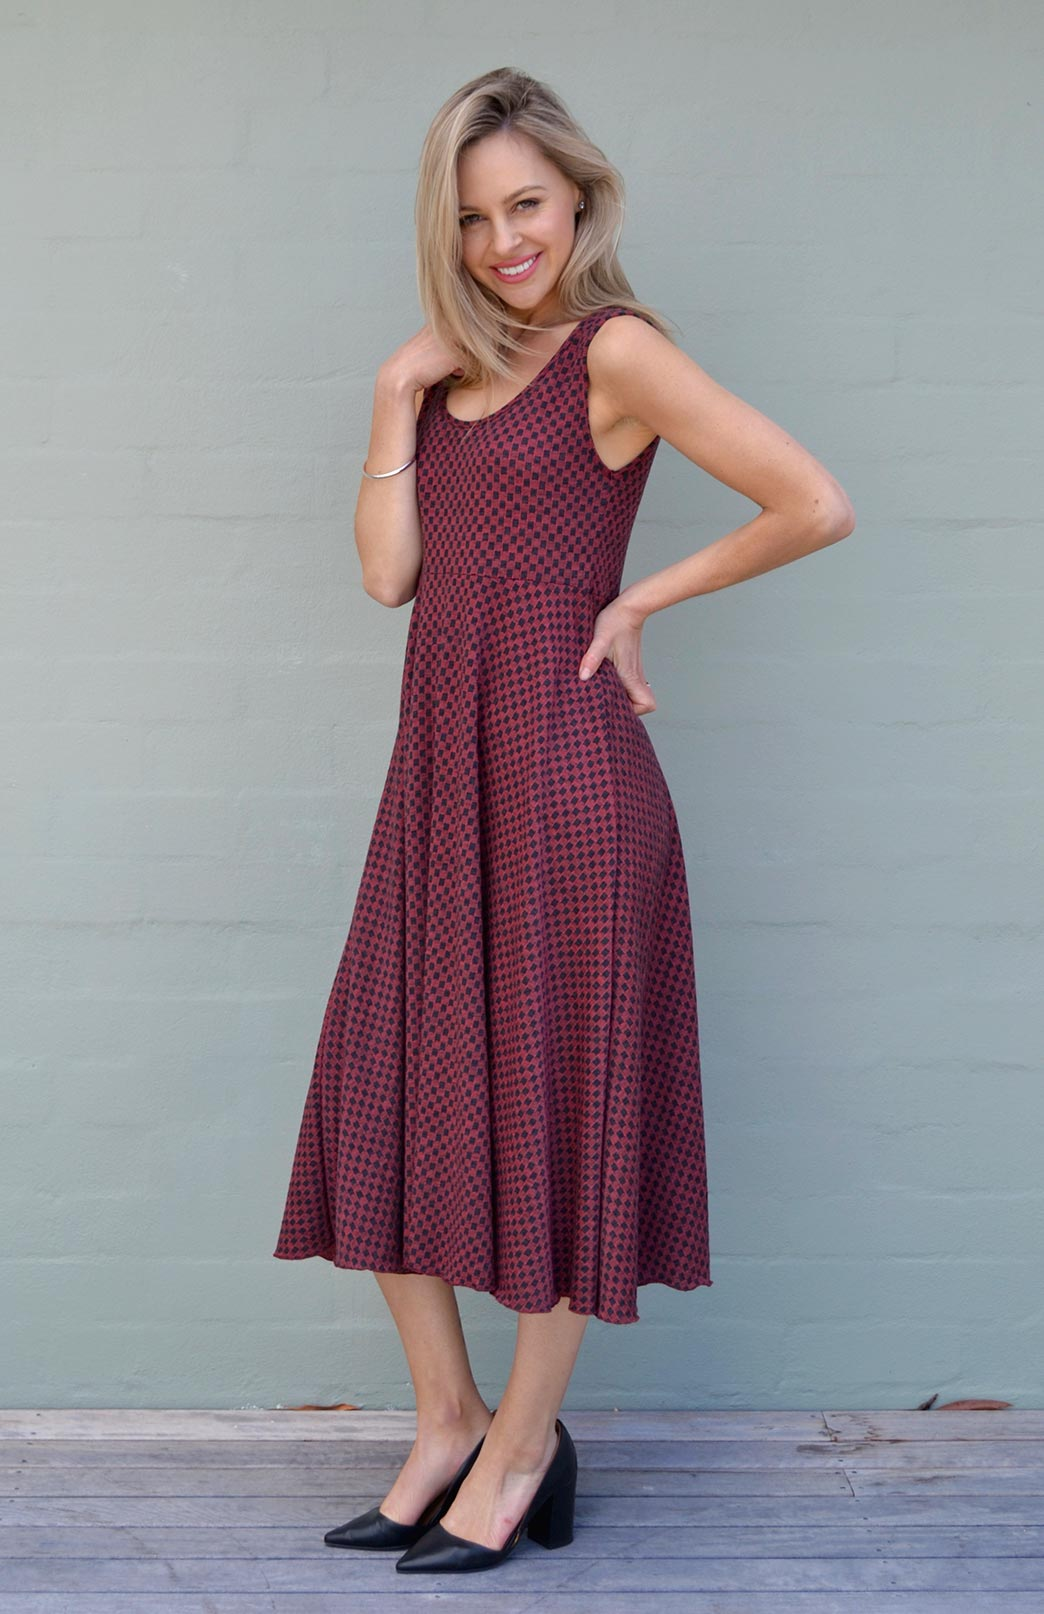 Fan Dress - Women's Patterned Woollen Dress with empire waistline - Smitten Merino Tasmania Australia